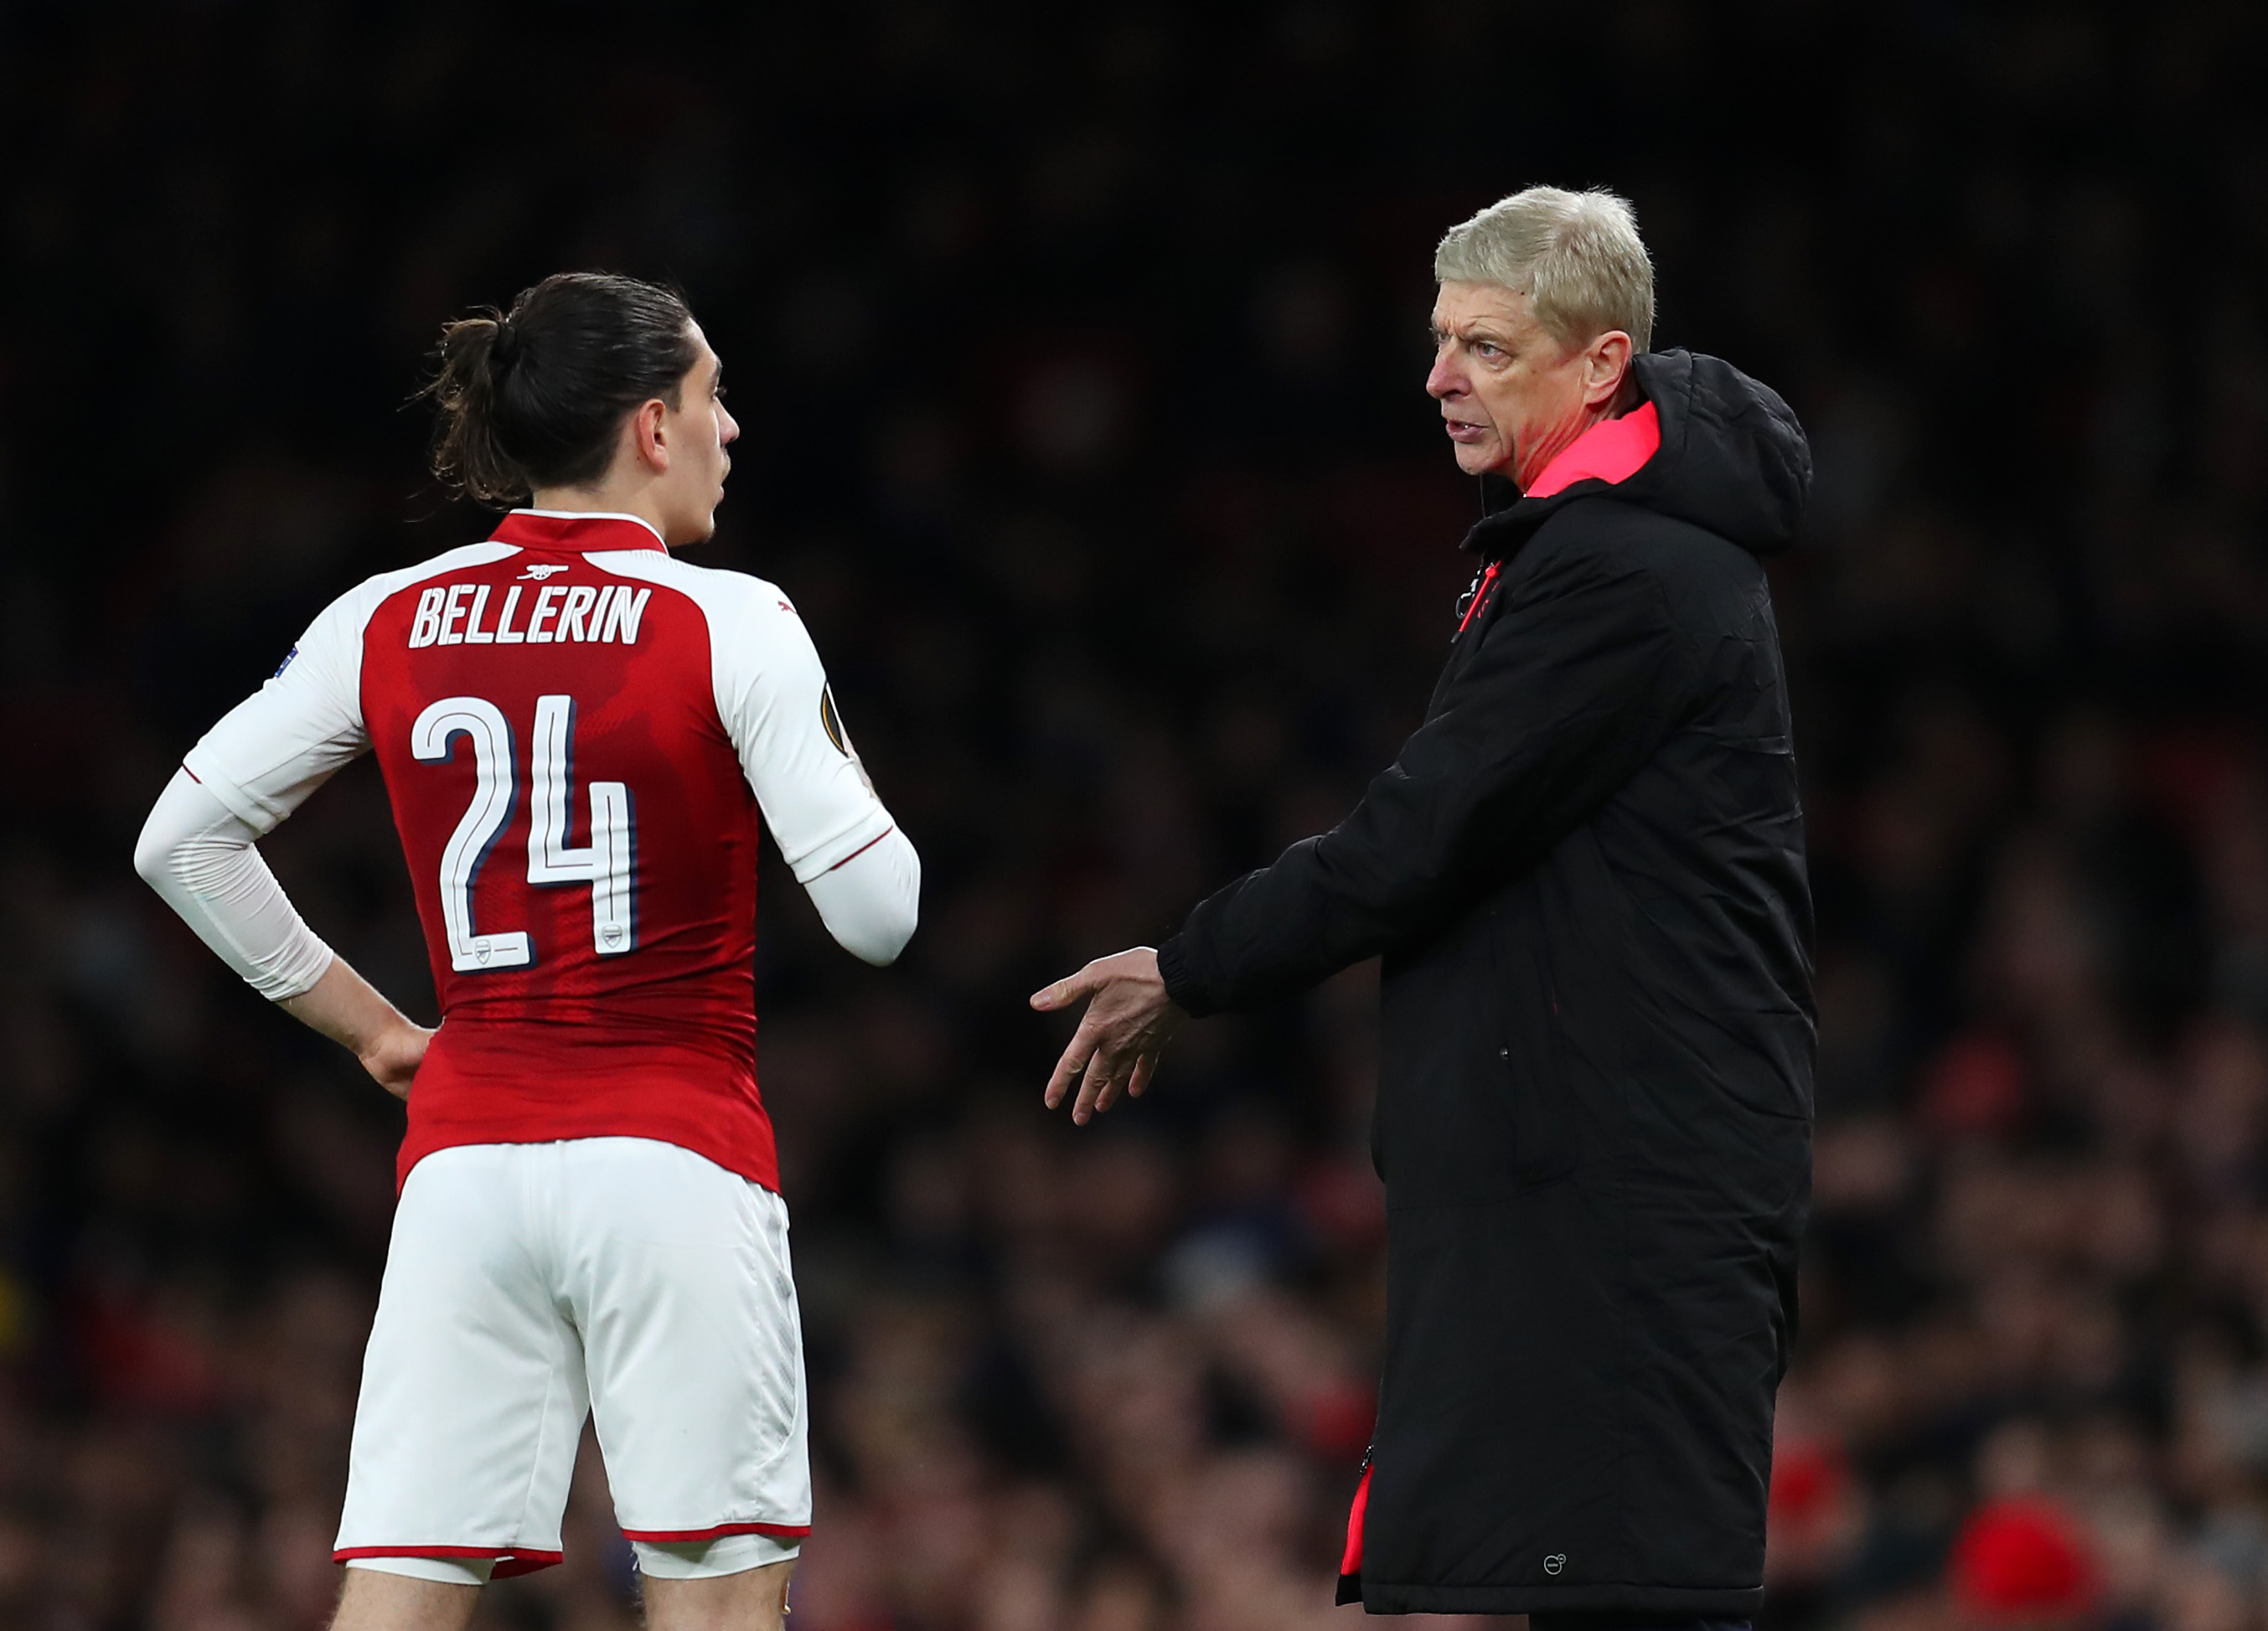 Bellerin is one of the few players in this Arsenal team that were once coached by the legendary Arsene Wenger. (Picture Courtesy - AFP/Getty Images)